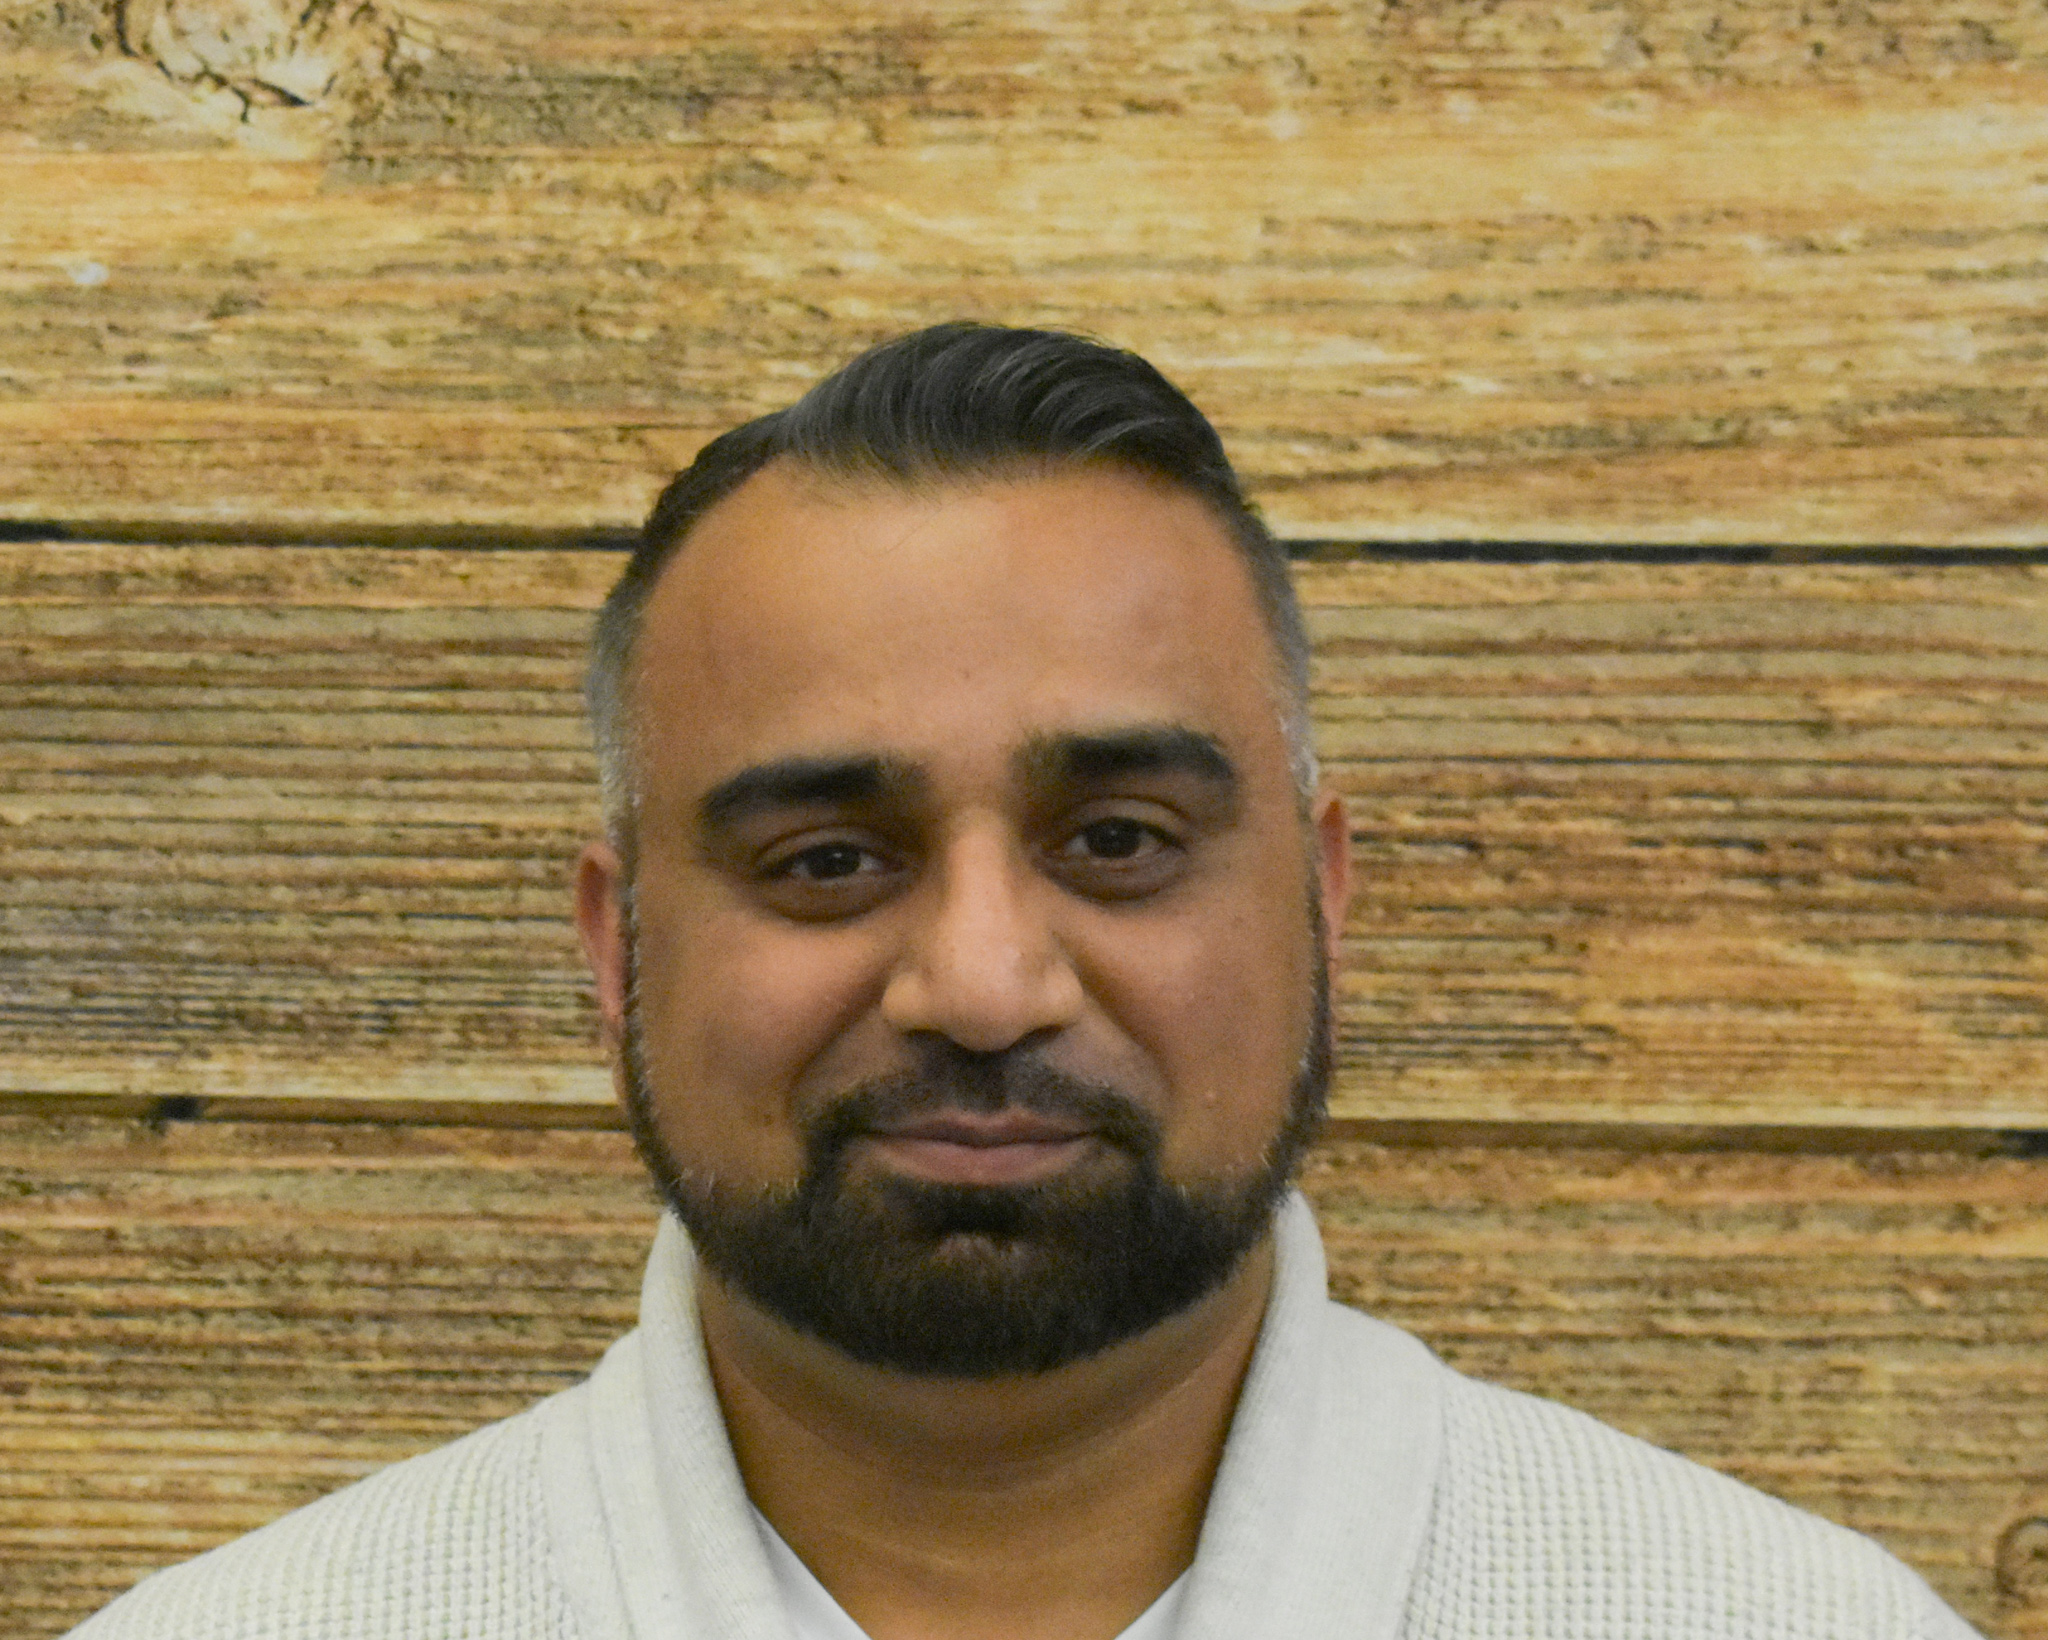 Global Facility Management & Construction Hires Zishan Razzaq as VP of IT